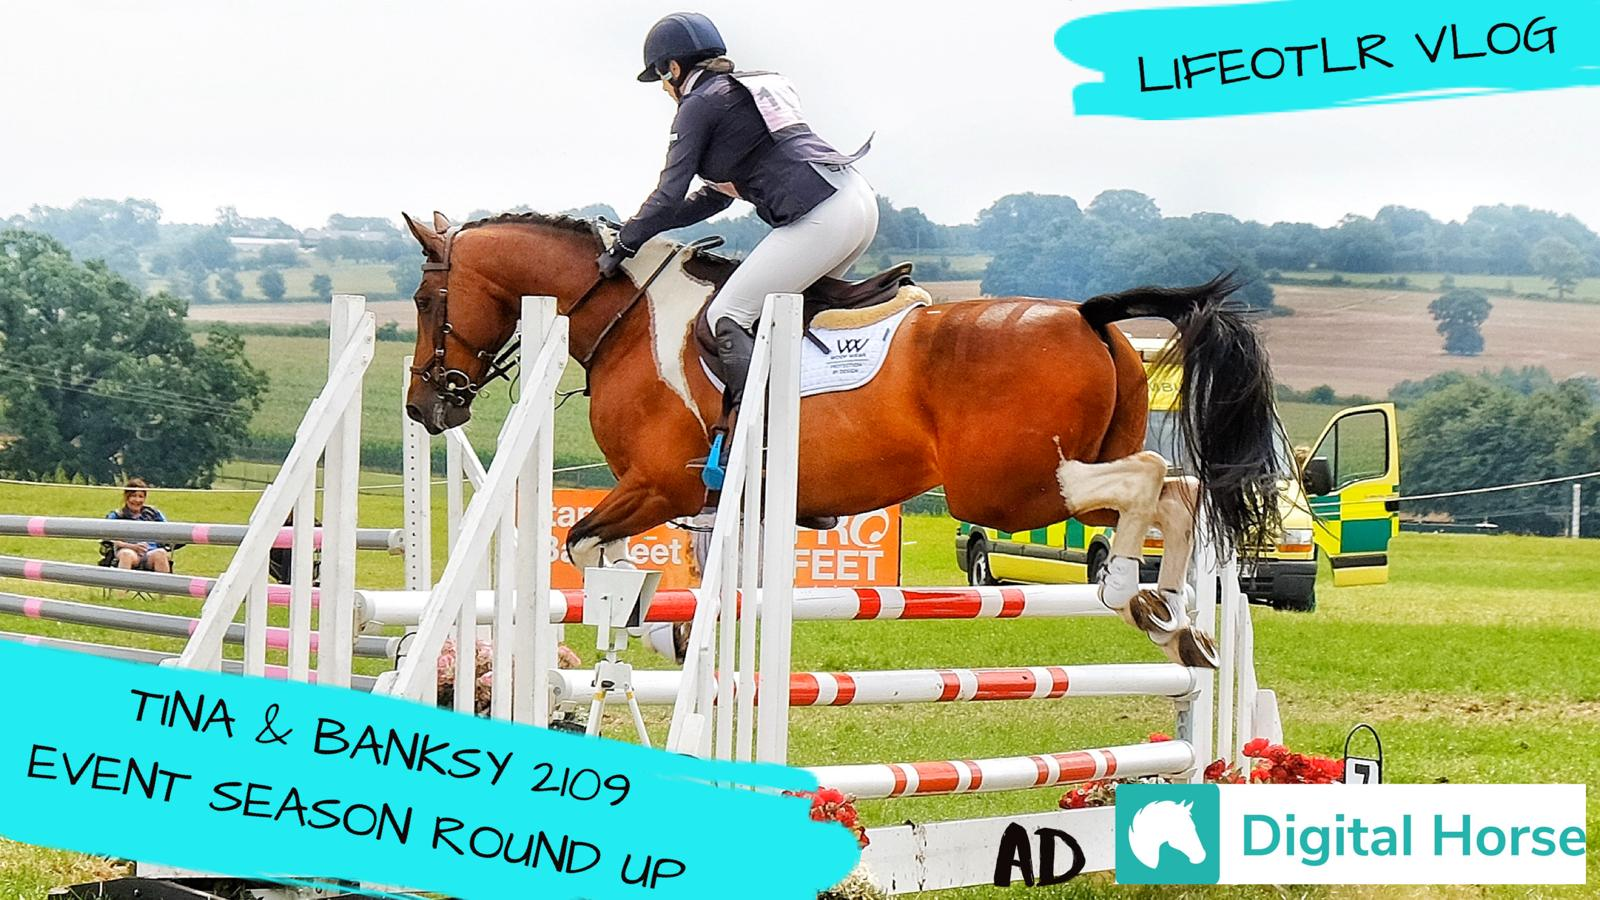 Tina & Banksy ~ 2019 Event Season Round Up ~ In Collab with Digital Horse